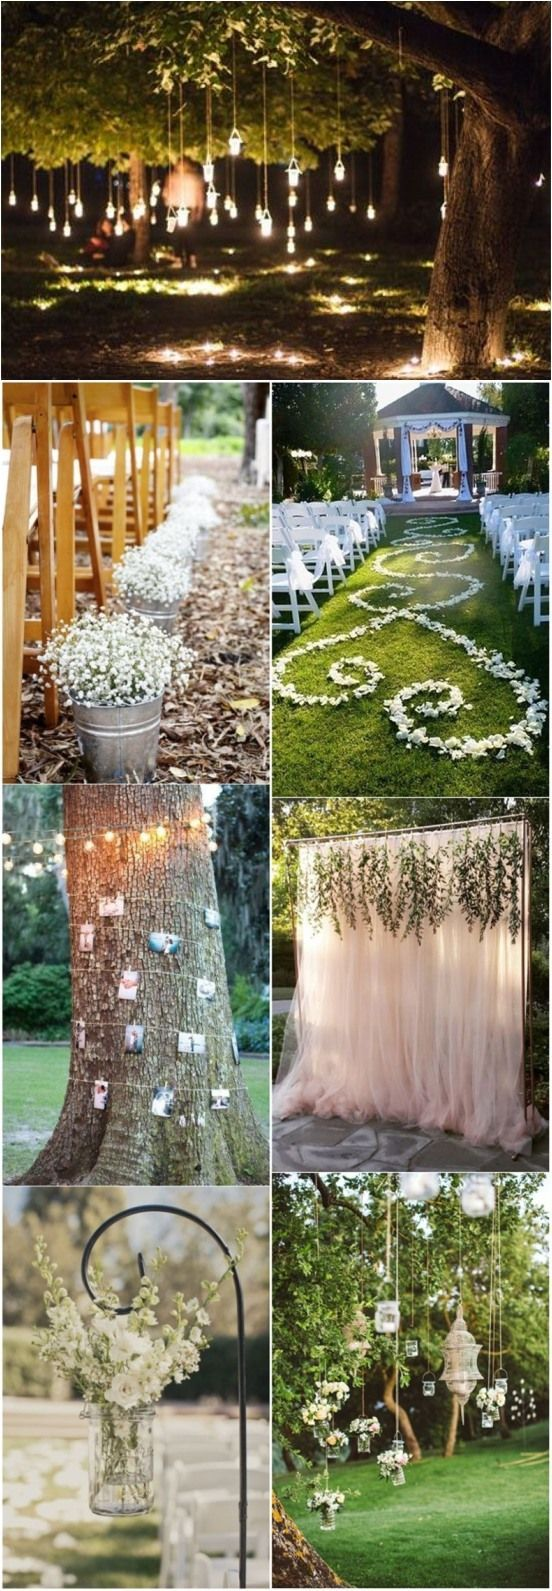 Exceptional Out Door Wedding Ideas Gallery